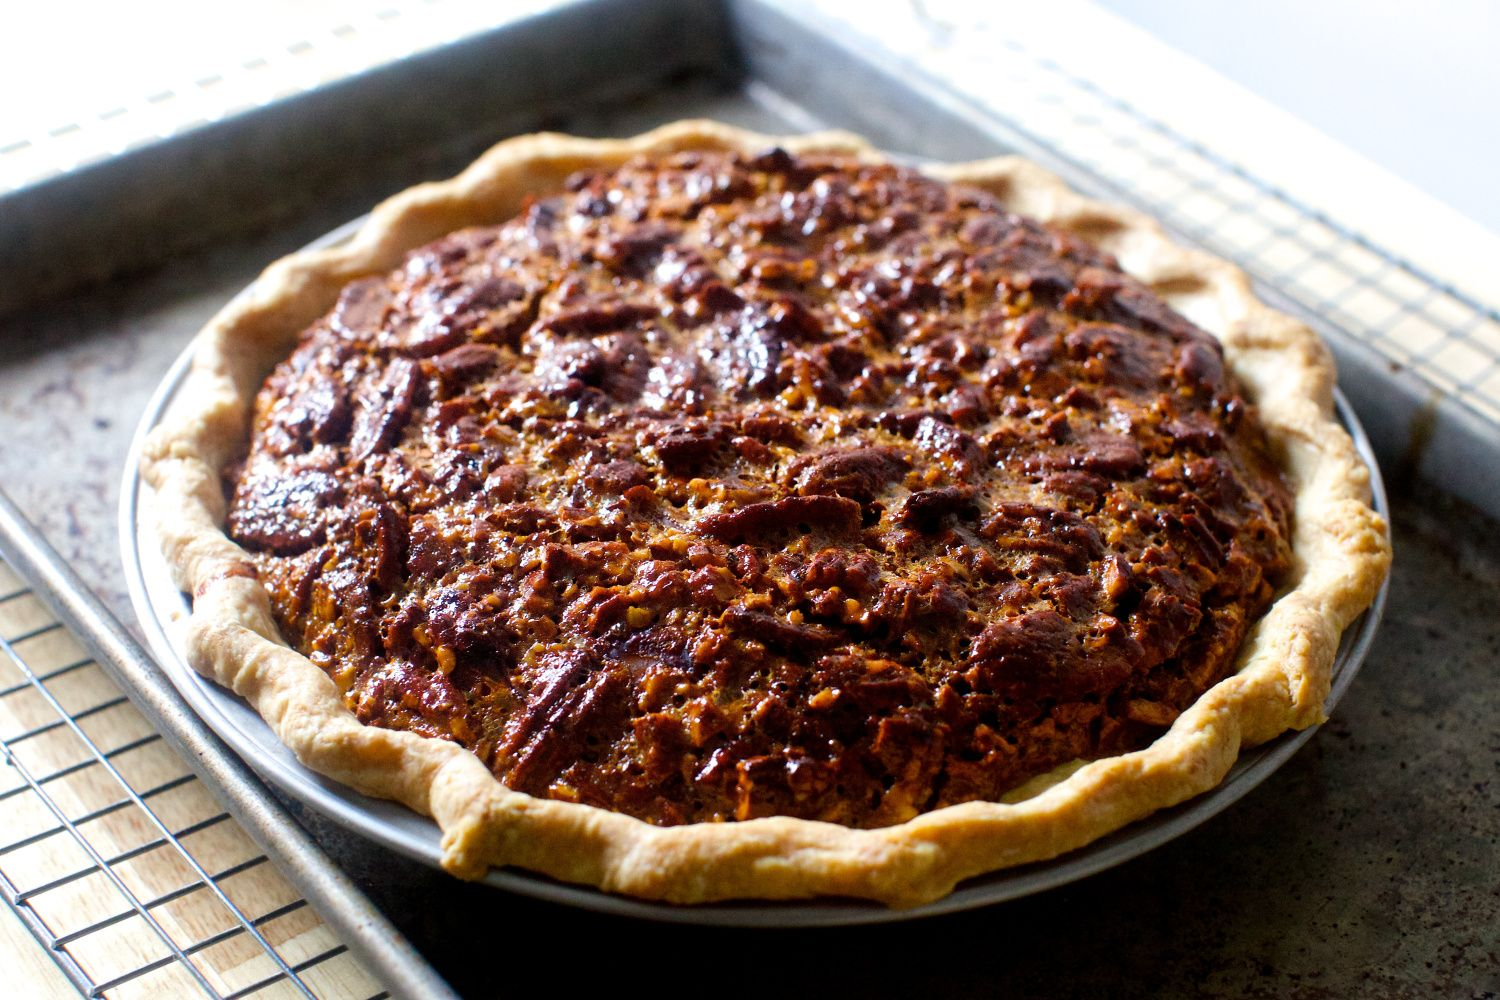 pecan pie We liked this - the golden syrup makes it | Tried recipes ...